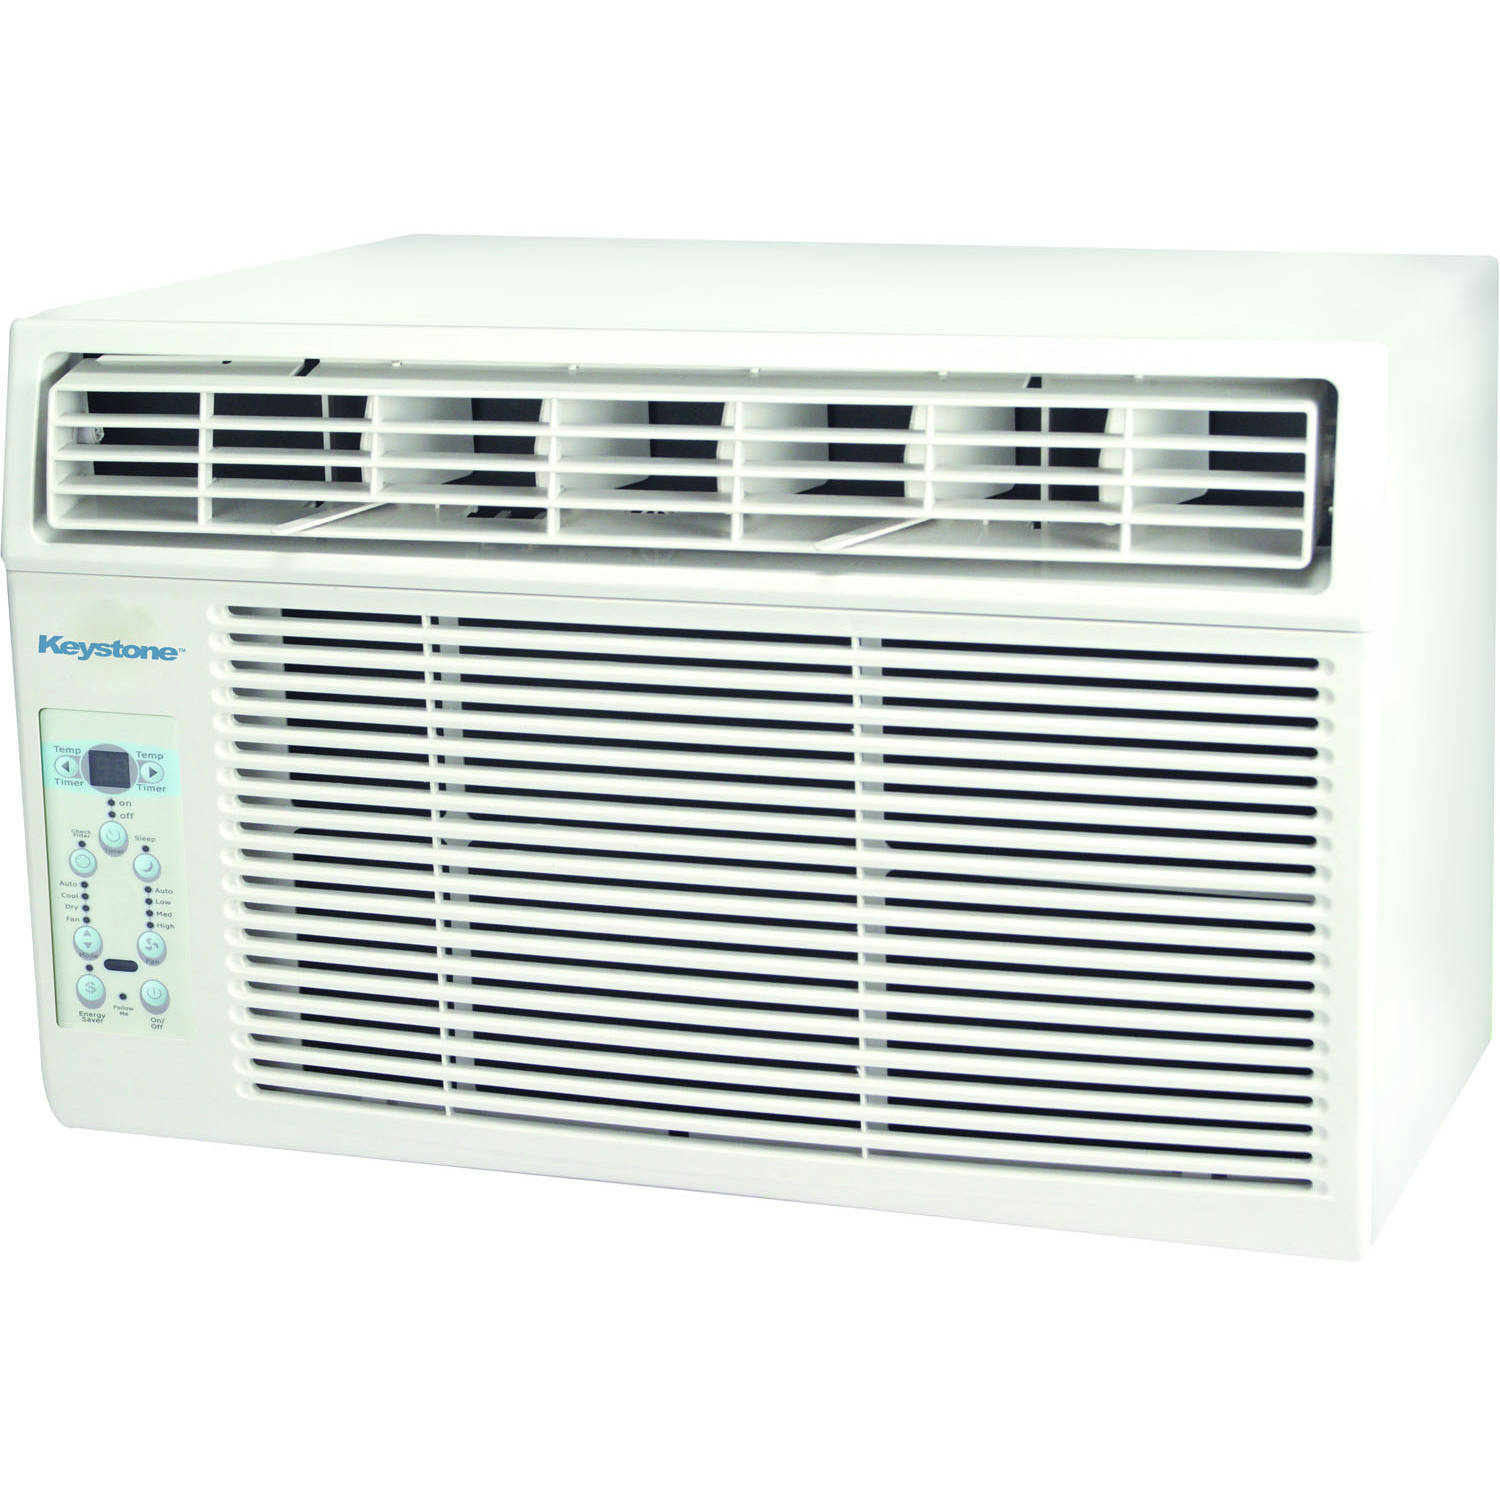 "Keystone KSTAW08B Energy Efficient 8,000-BTU 115V Window-Mounted Air Conditioner with ""Follow Me"" LCD Remote Control"